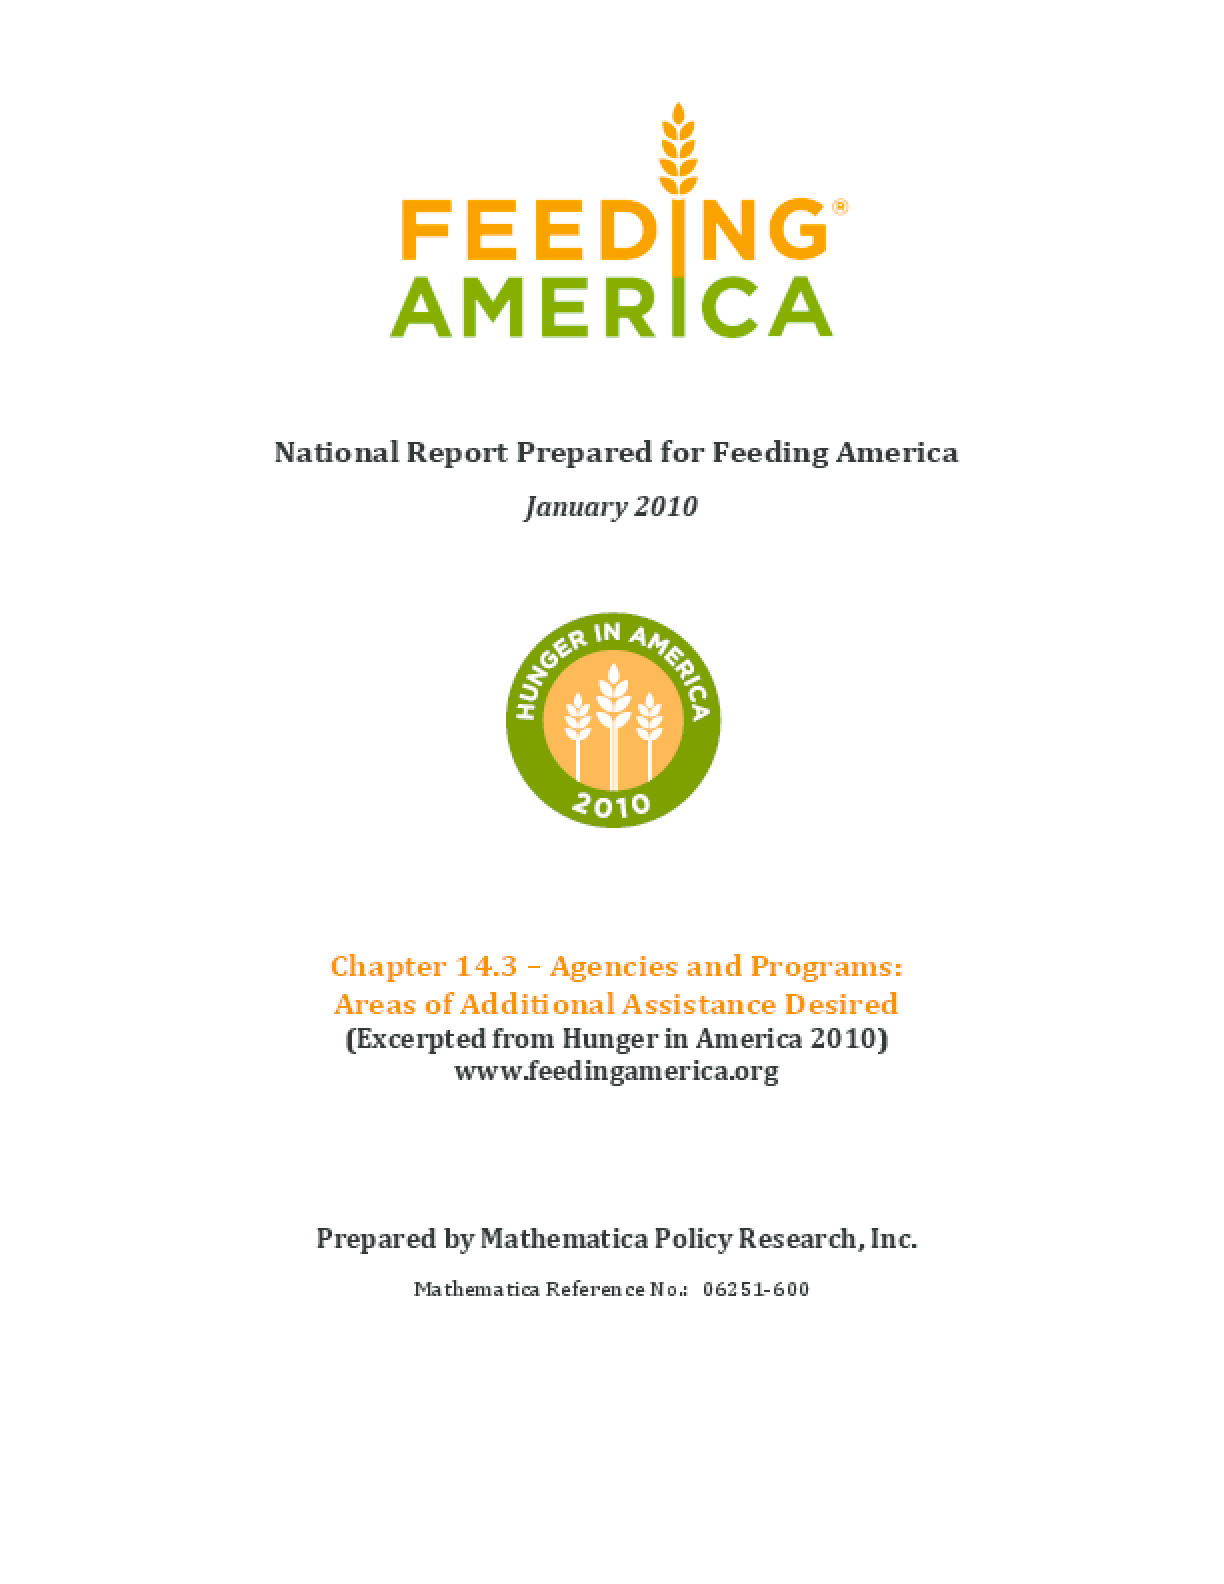 Feeding America Agencies and Food Programs: Areas of Additional Assistance Desired